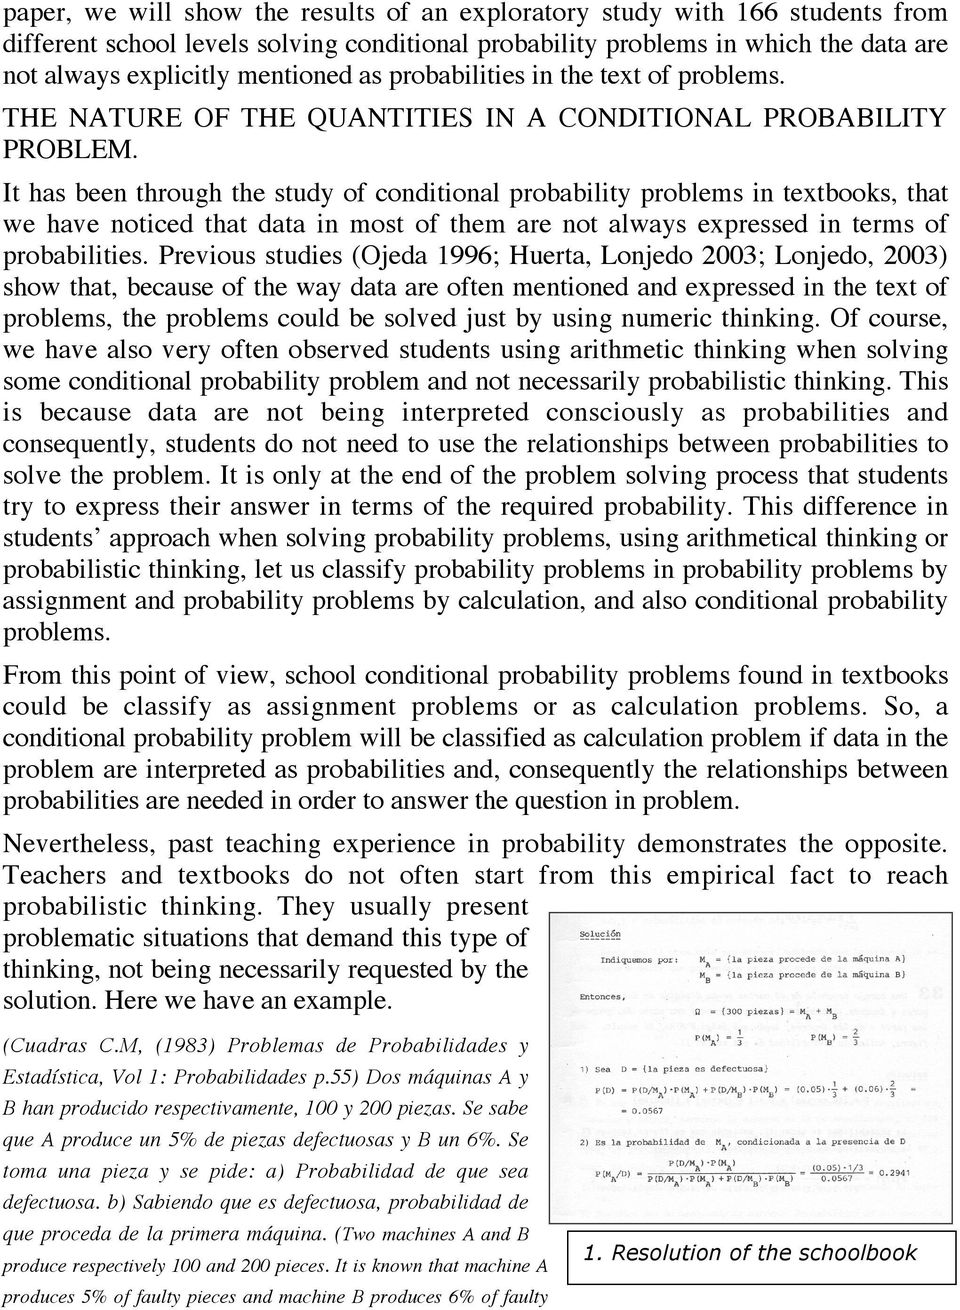 It has been through the study of conditional probability problems in textbooks, that we have noticed that data in most of them are not always expressed in terms of probabilities.